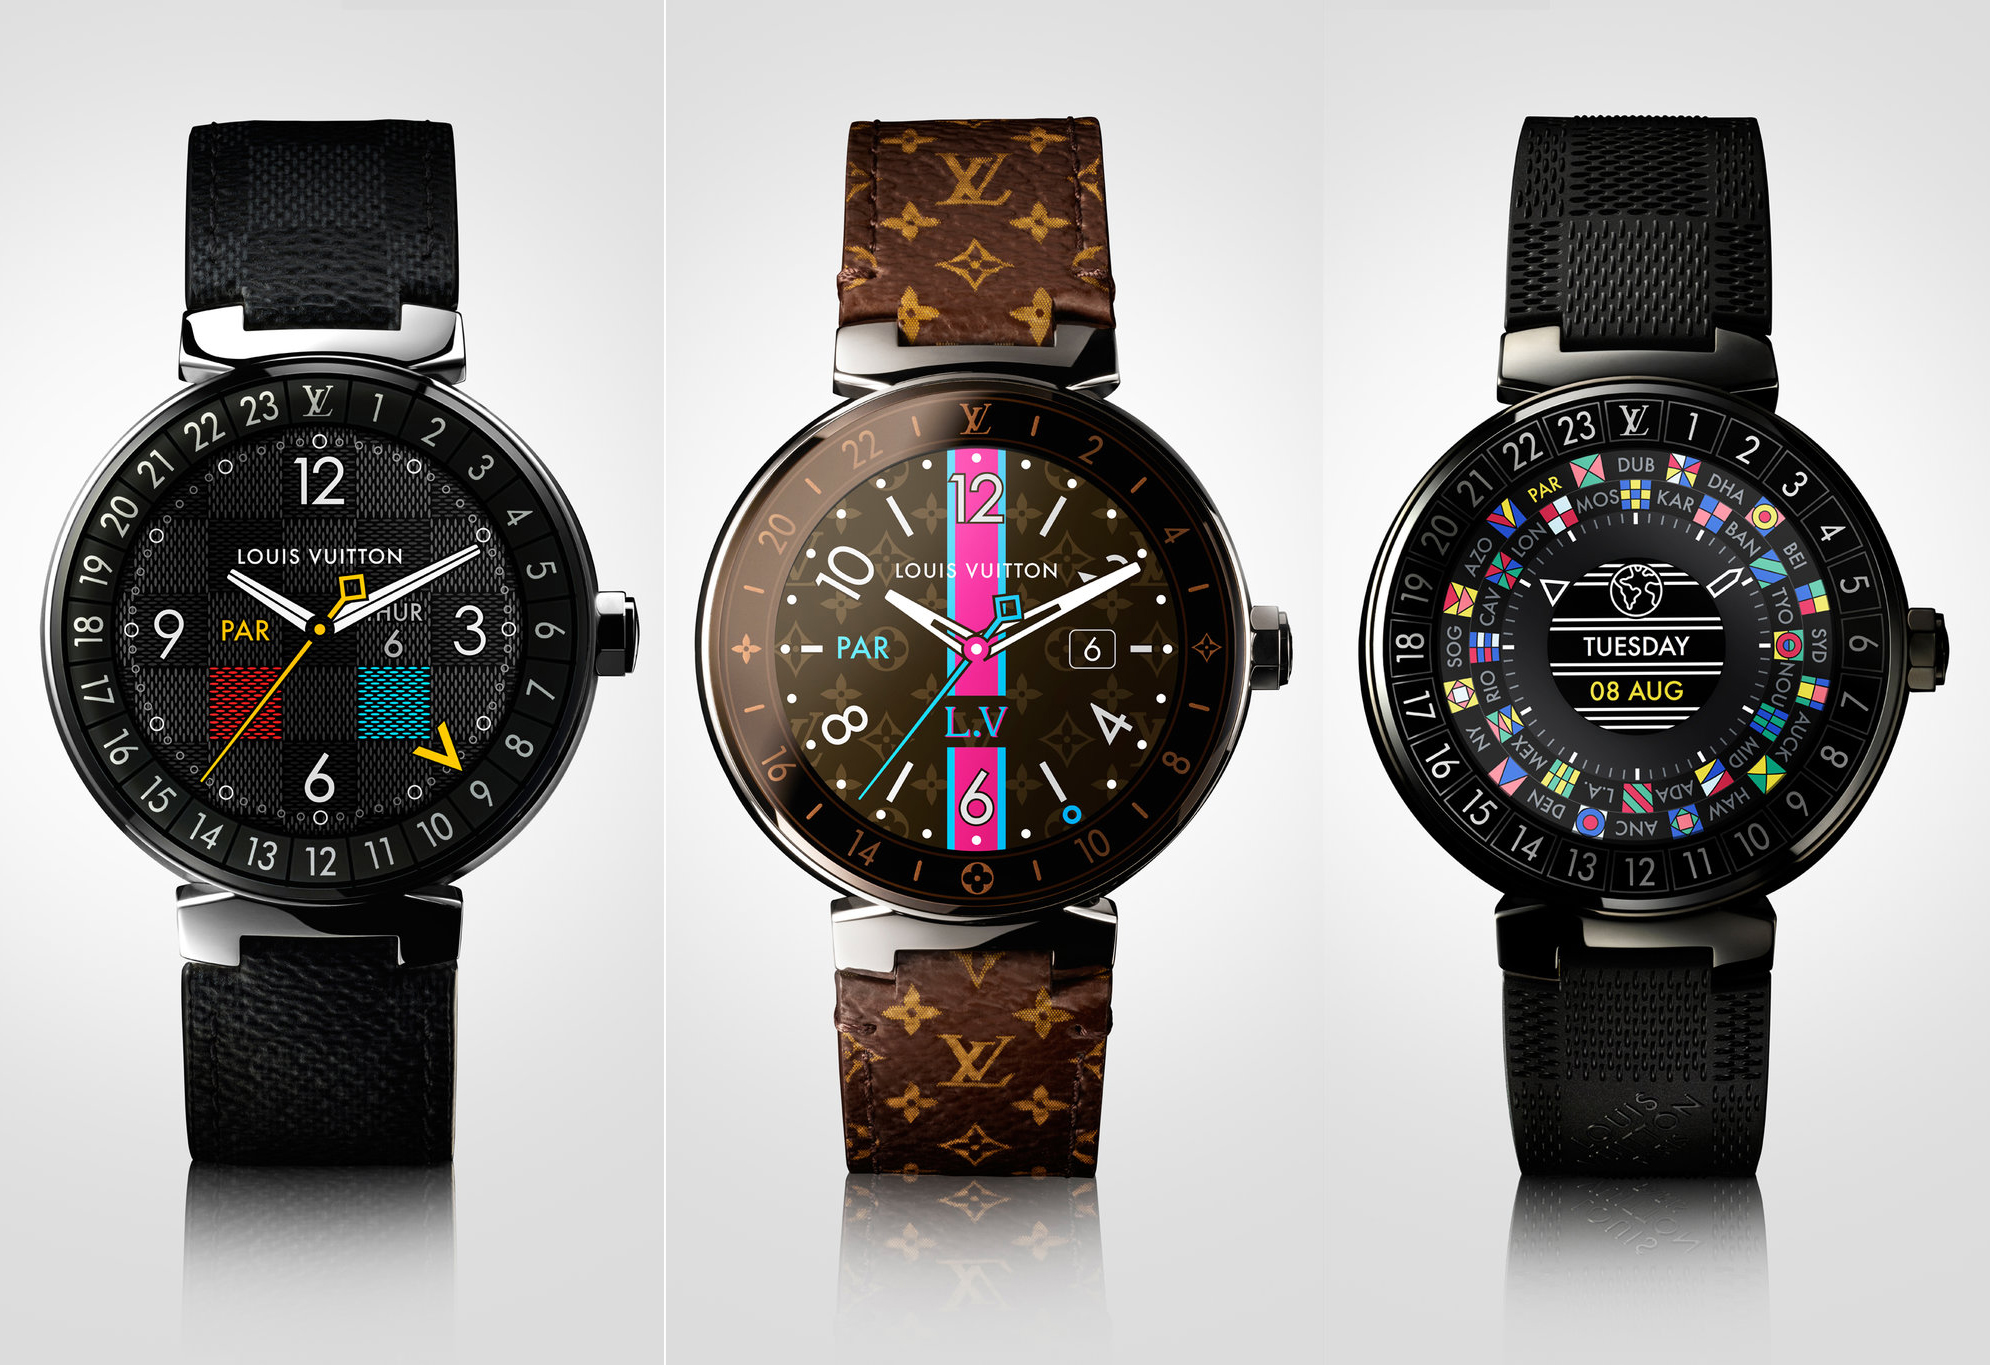 Louis Vuitton Android Wear Smartwatch Costs $2450